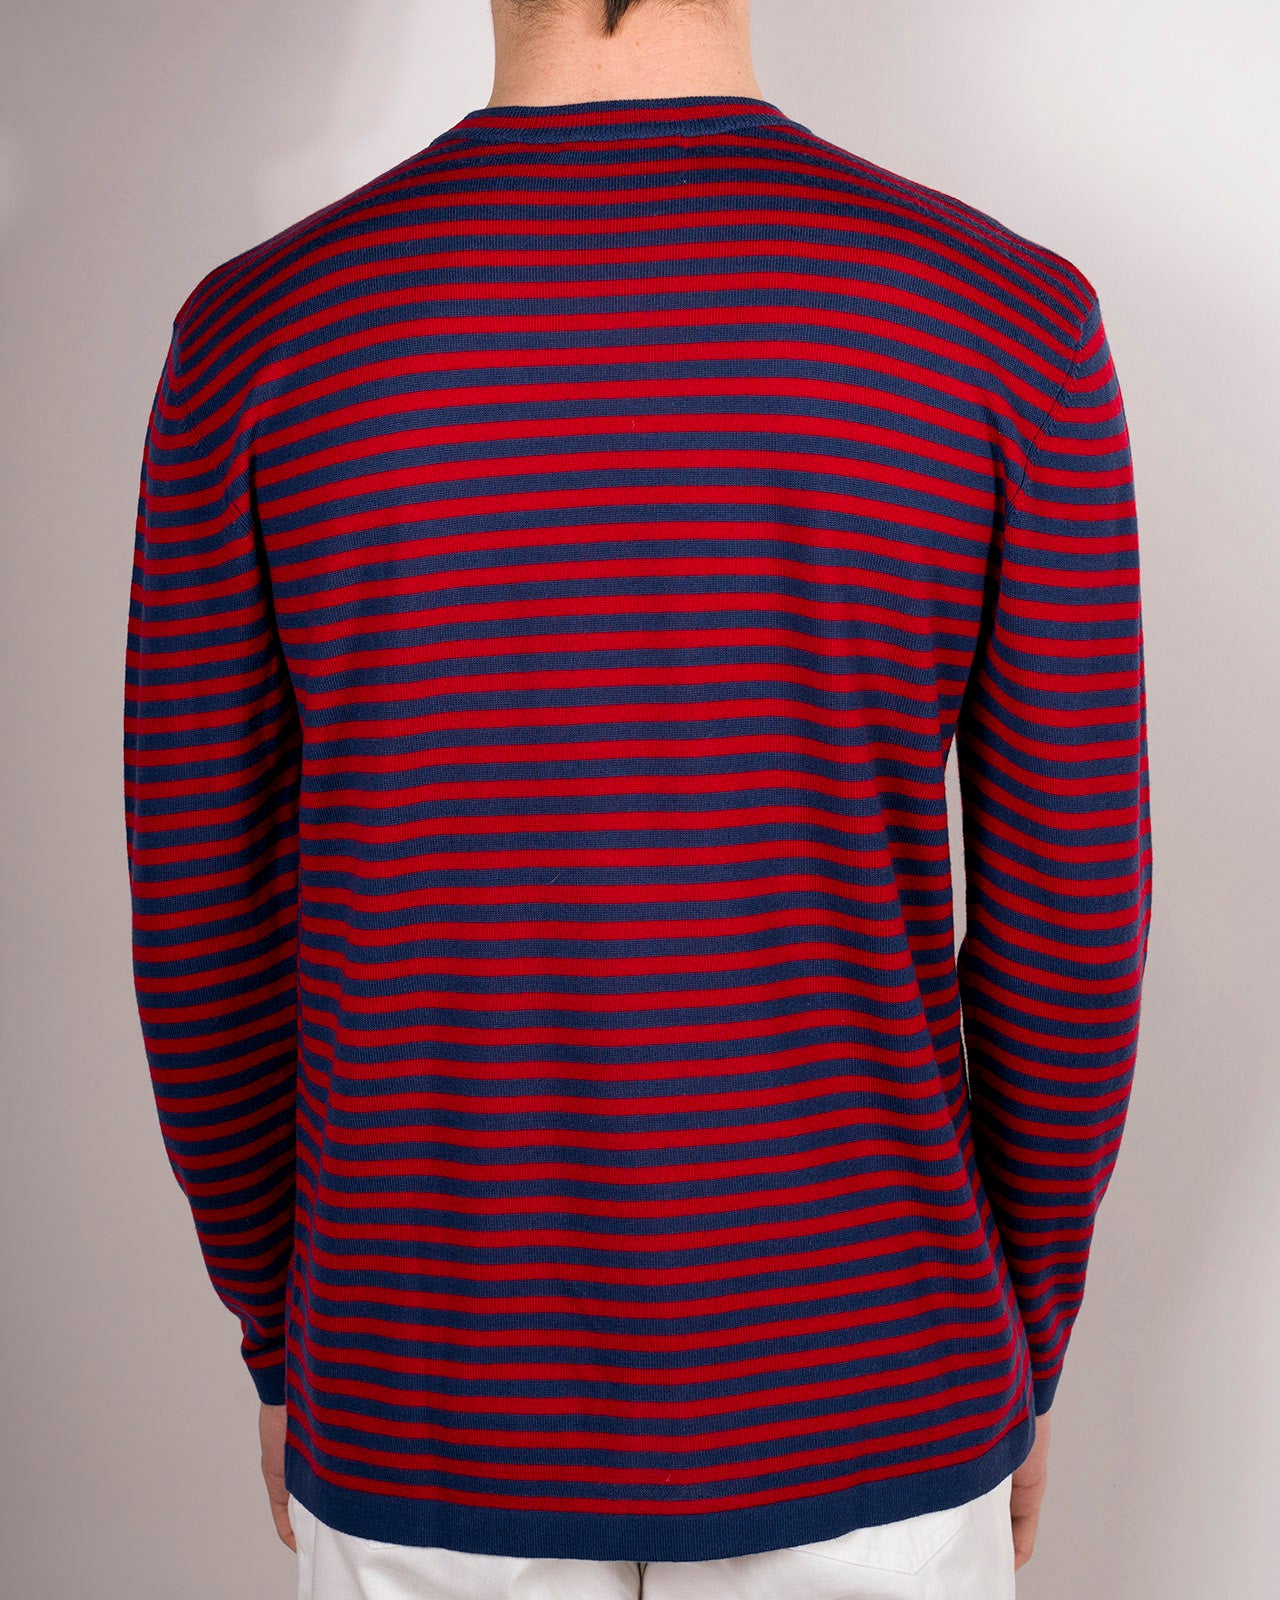 RONCOLA LIGHTWEIGHT RED-BLUE STRIPED CREW